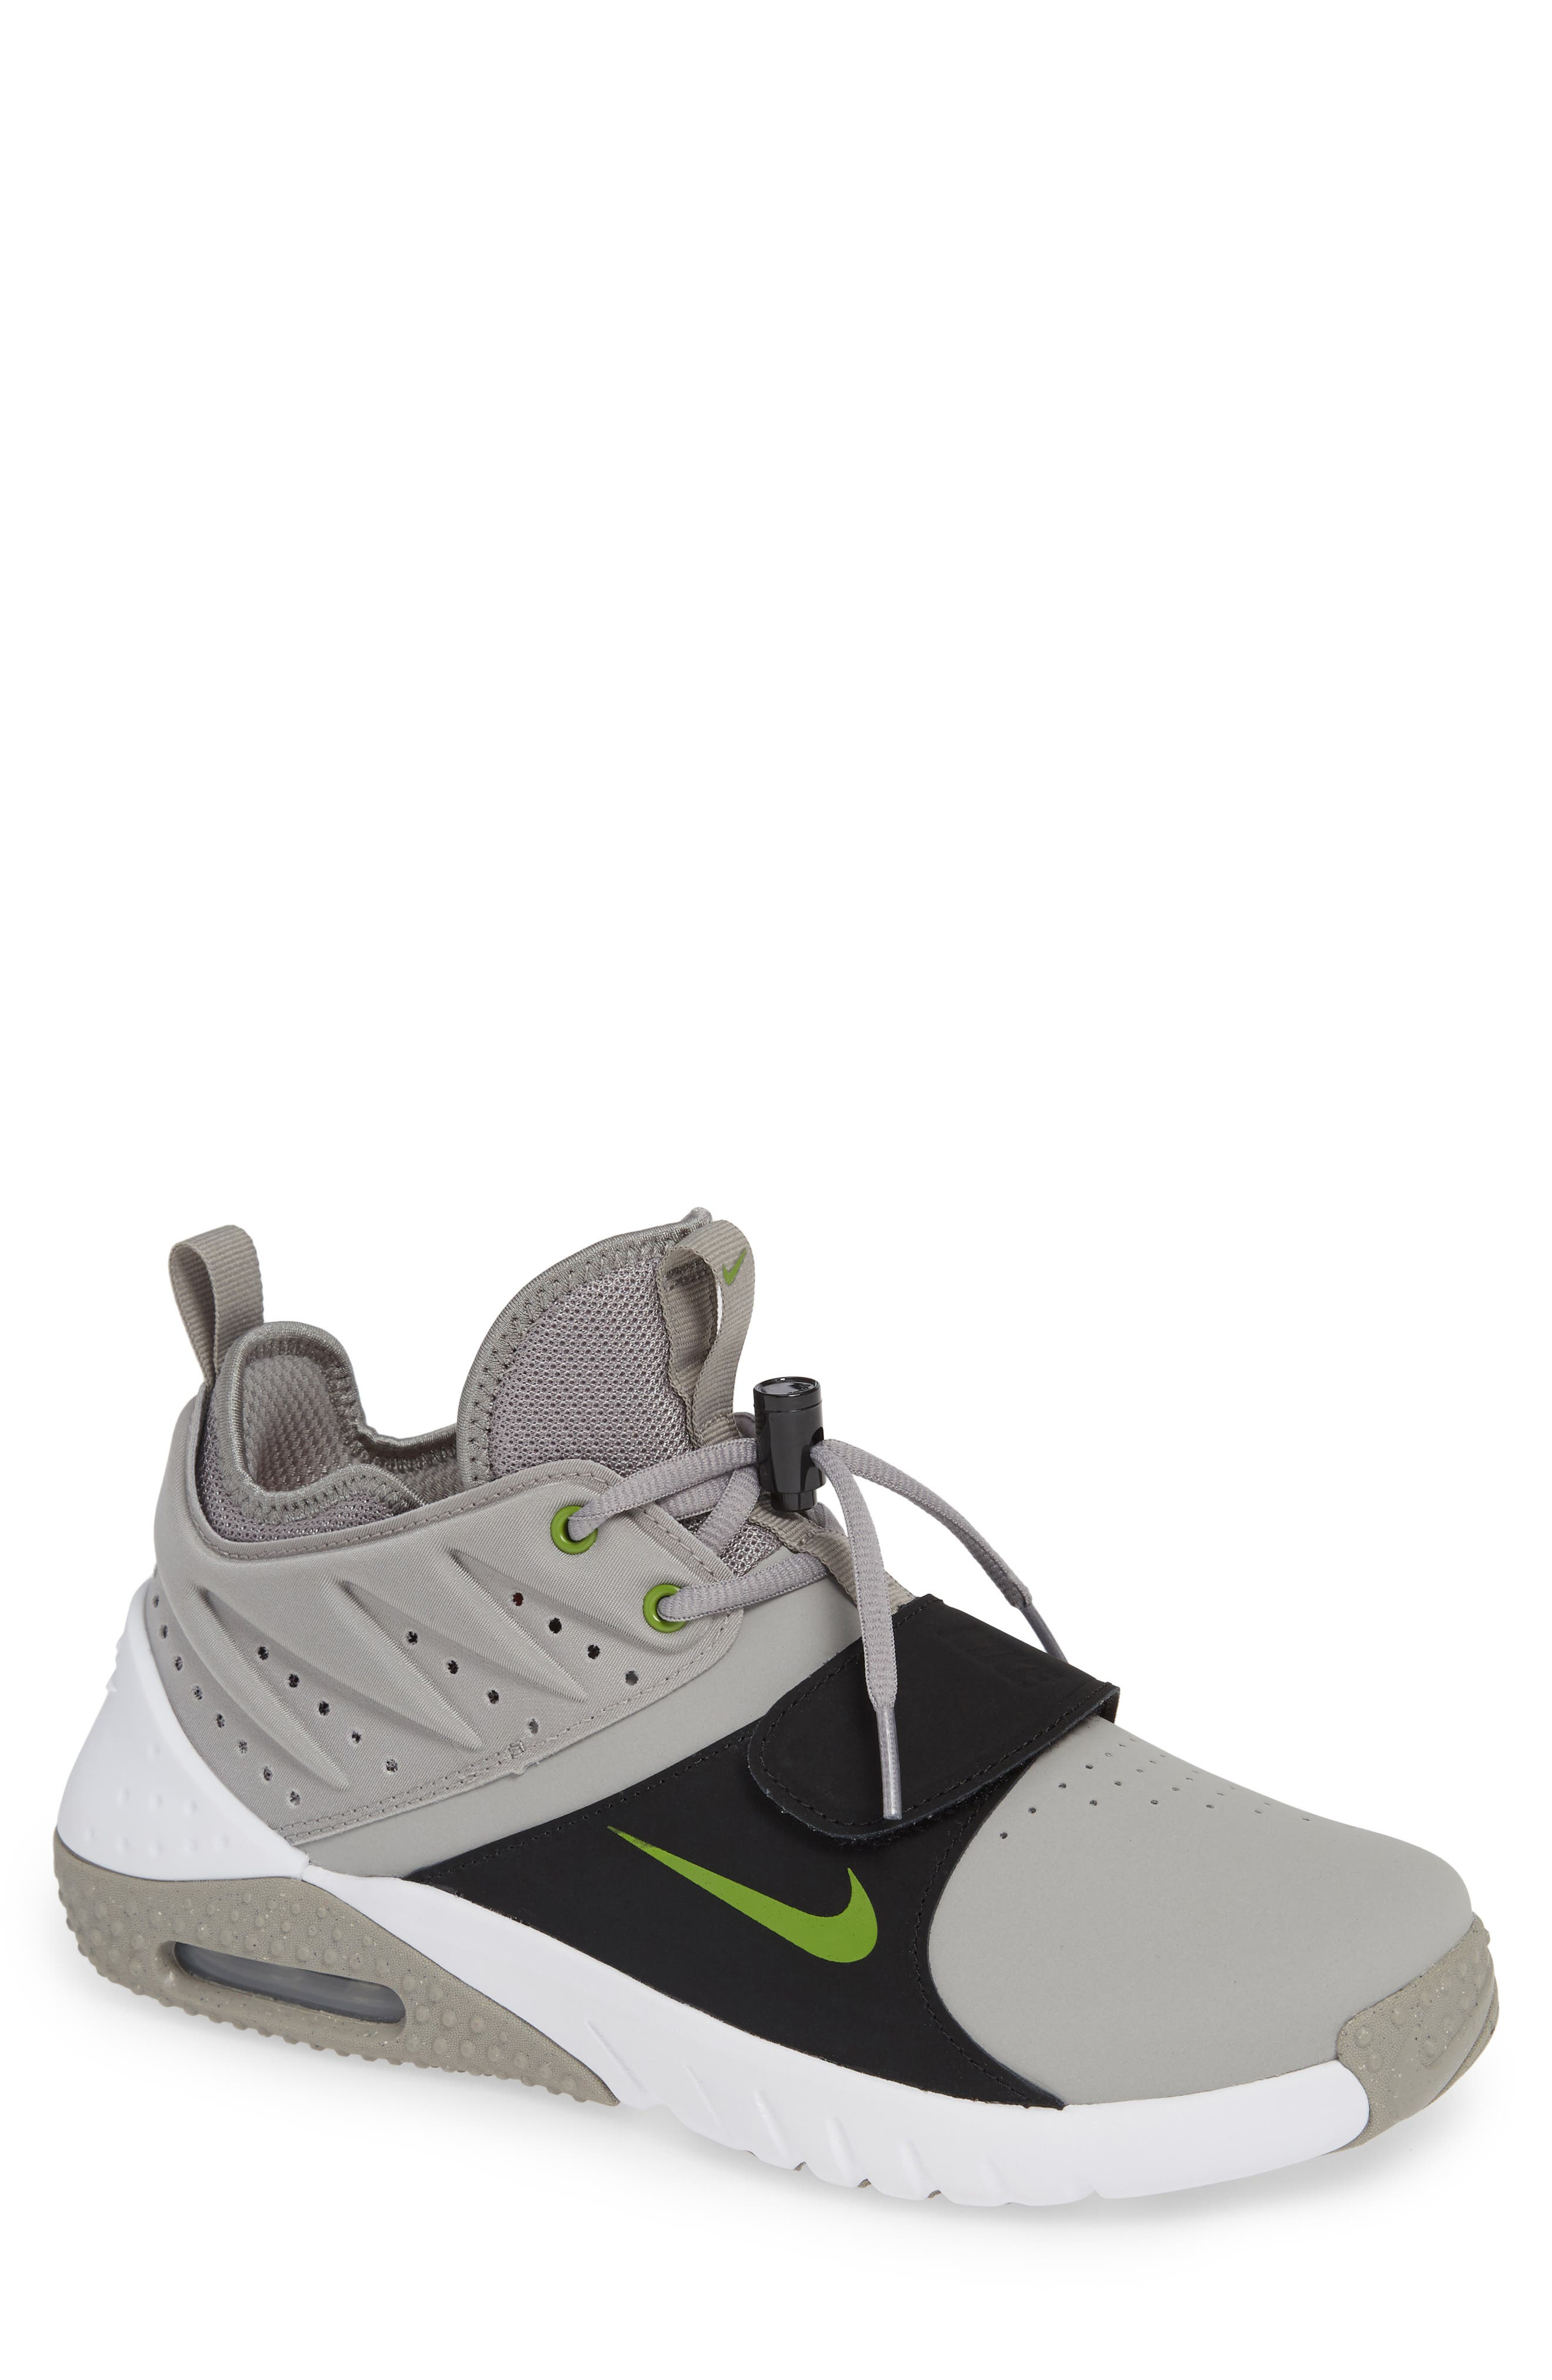 Air Max Trainer 1 Training Shoe,                             Main thumbnail 1, color,                             MEDIUM GREY/ WHITE/ BLACK